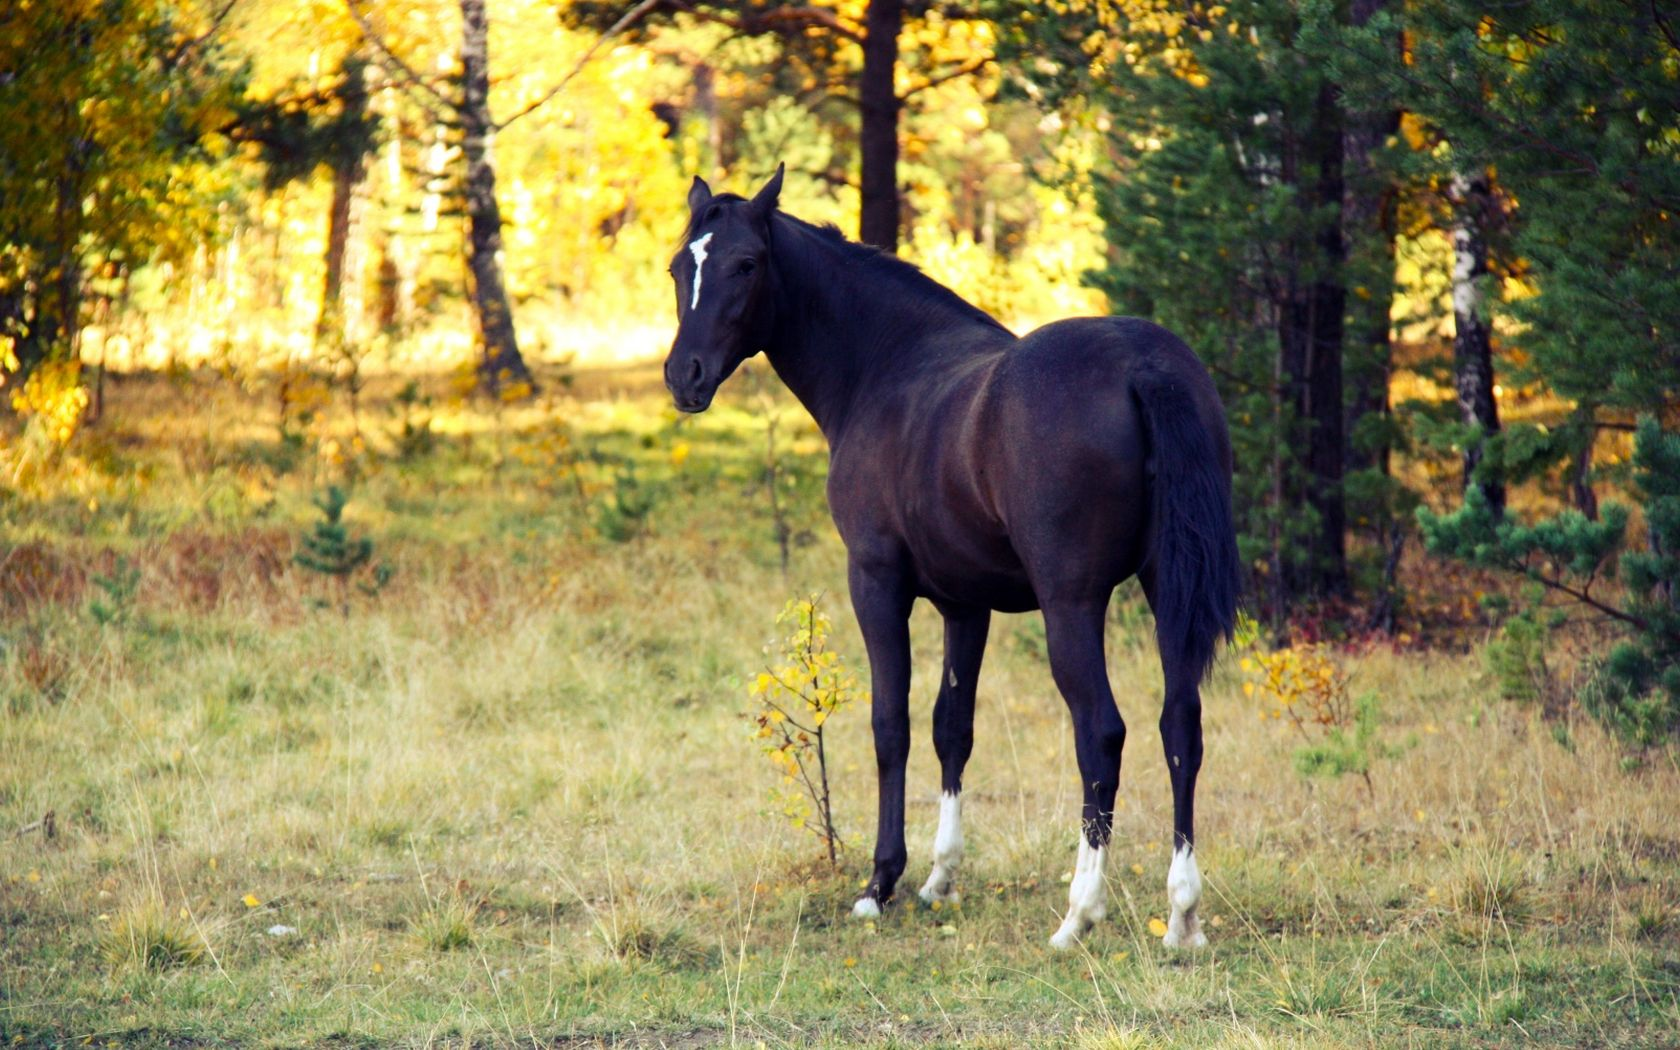 black_horse_3-wallpaper-1680x1050.jpg